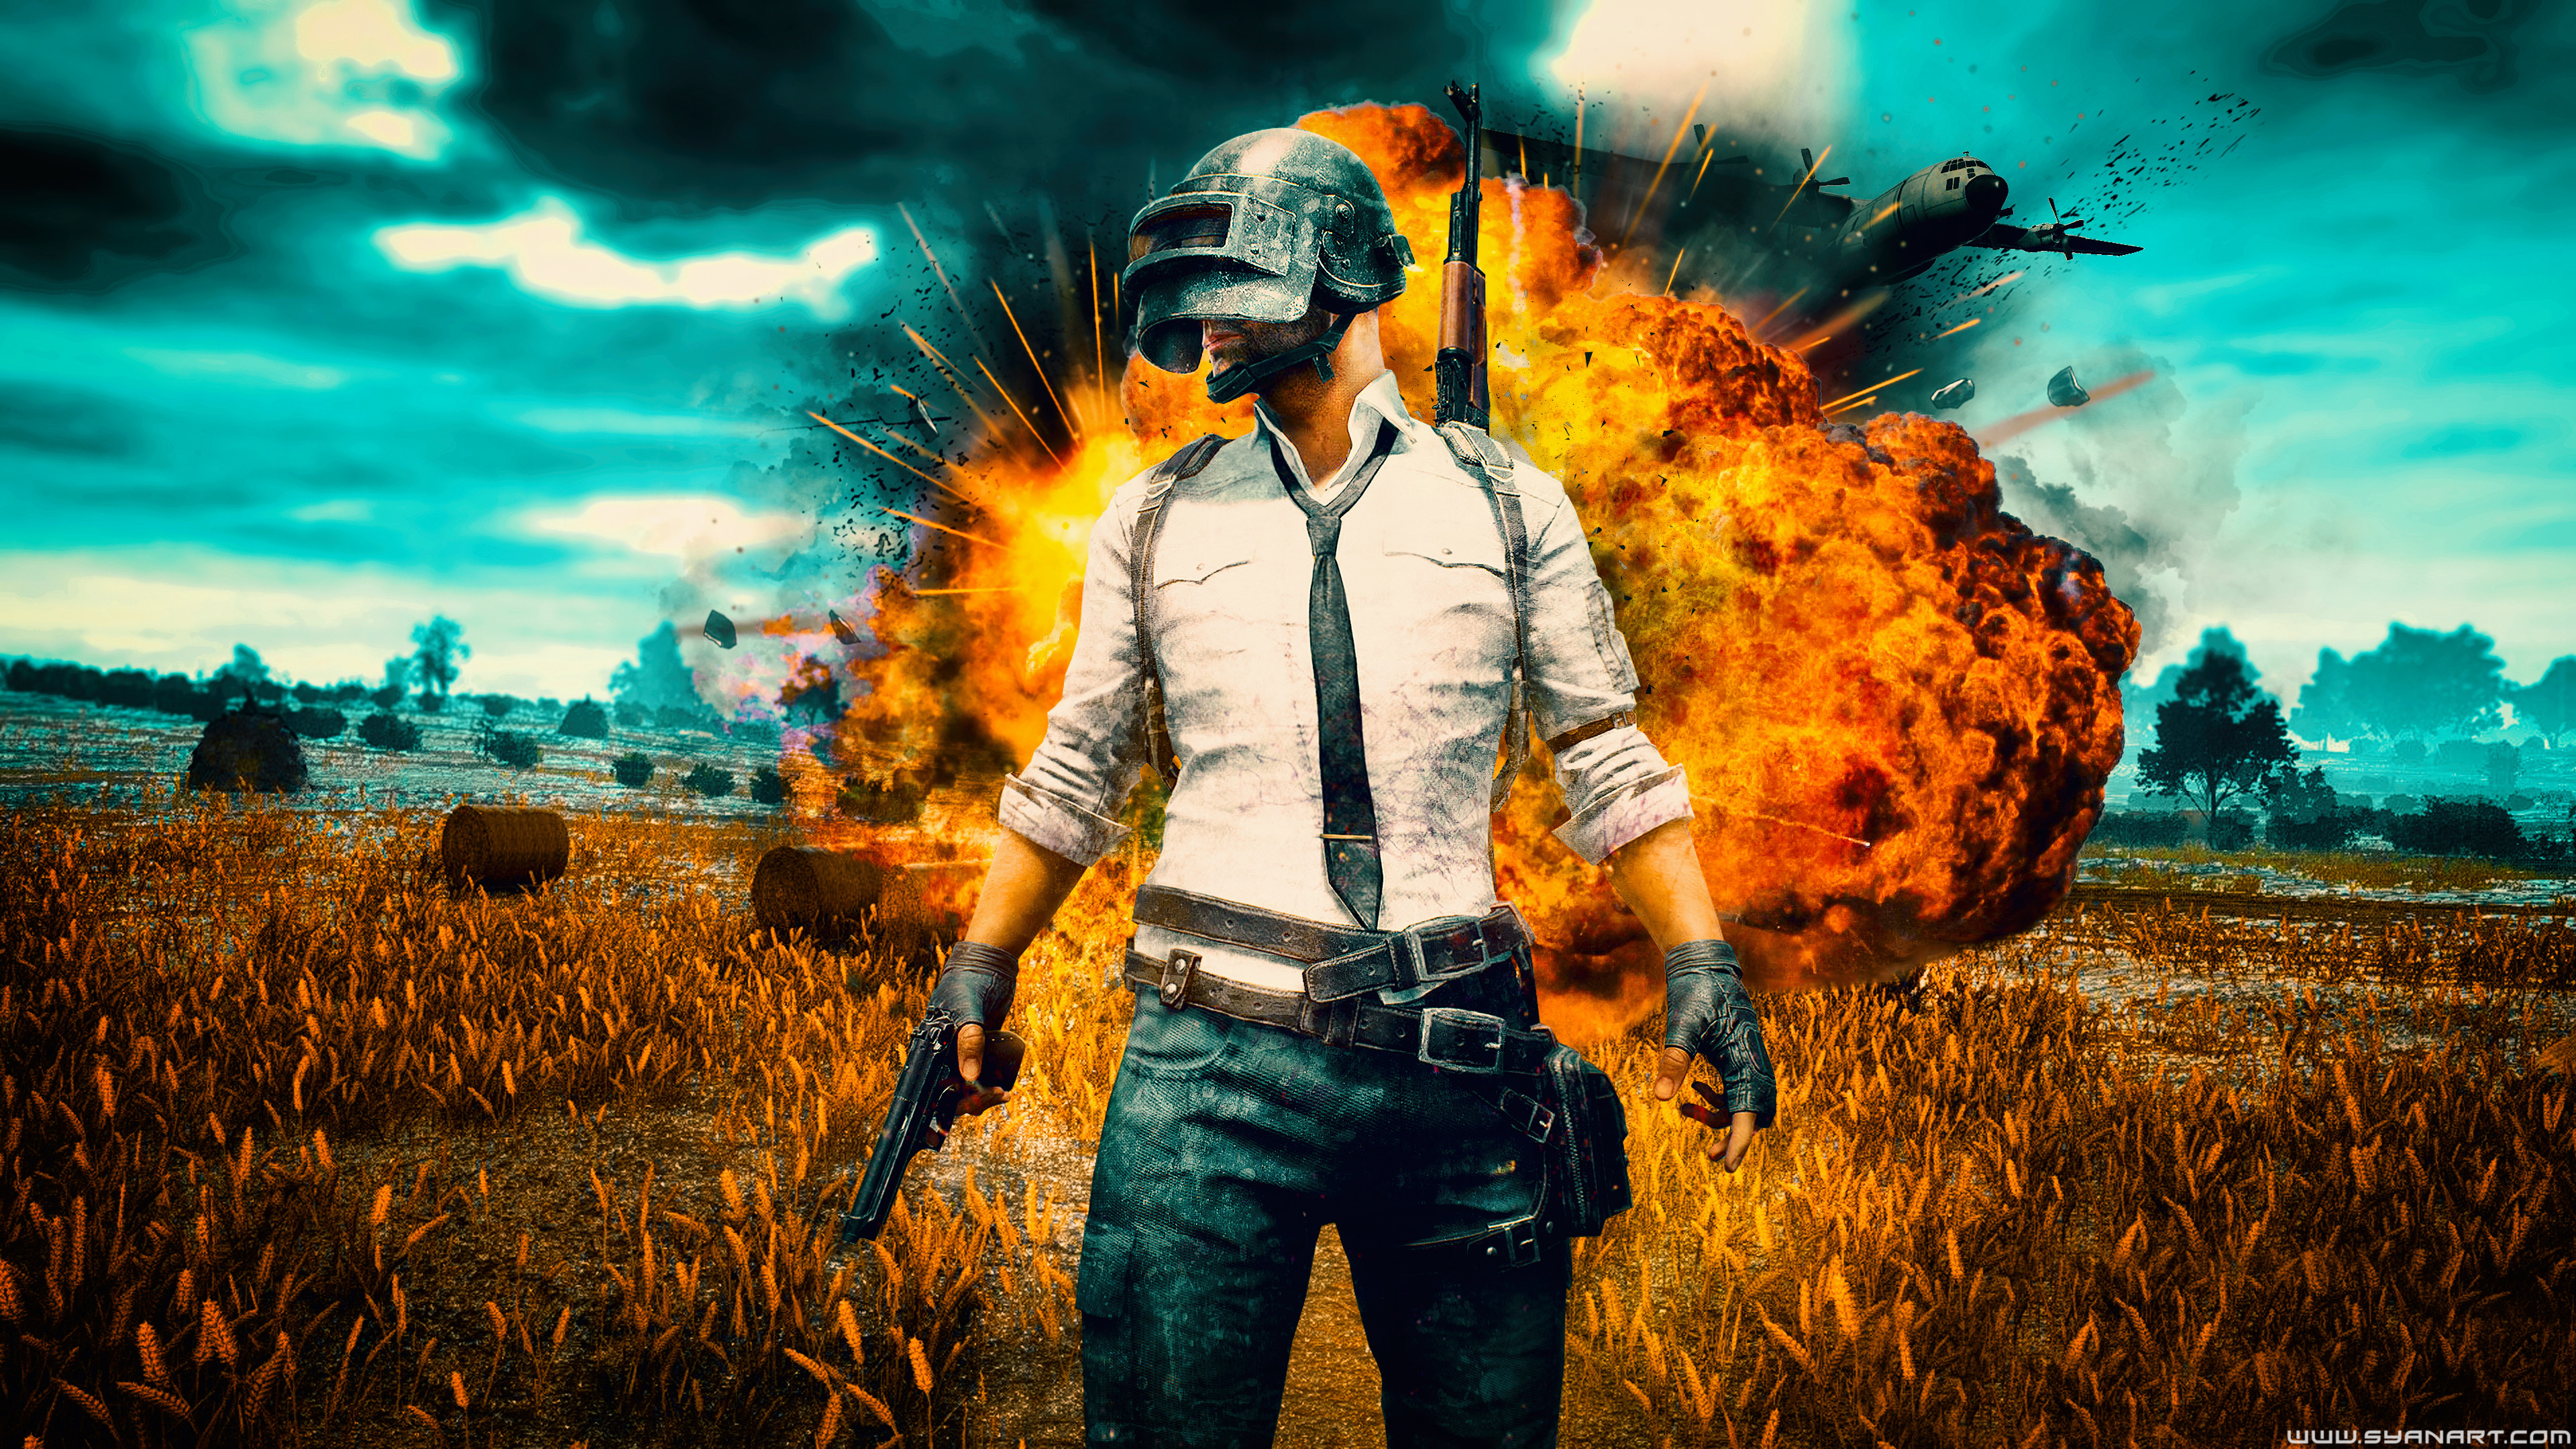 Pubg Hd Pics For Mobile: Pub Wallpaper (57+ Images